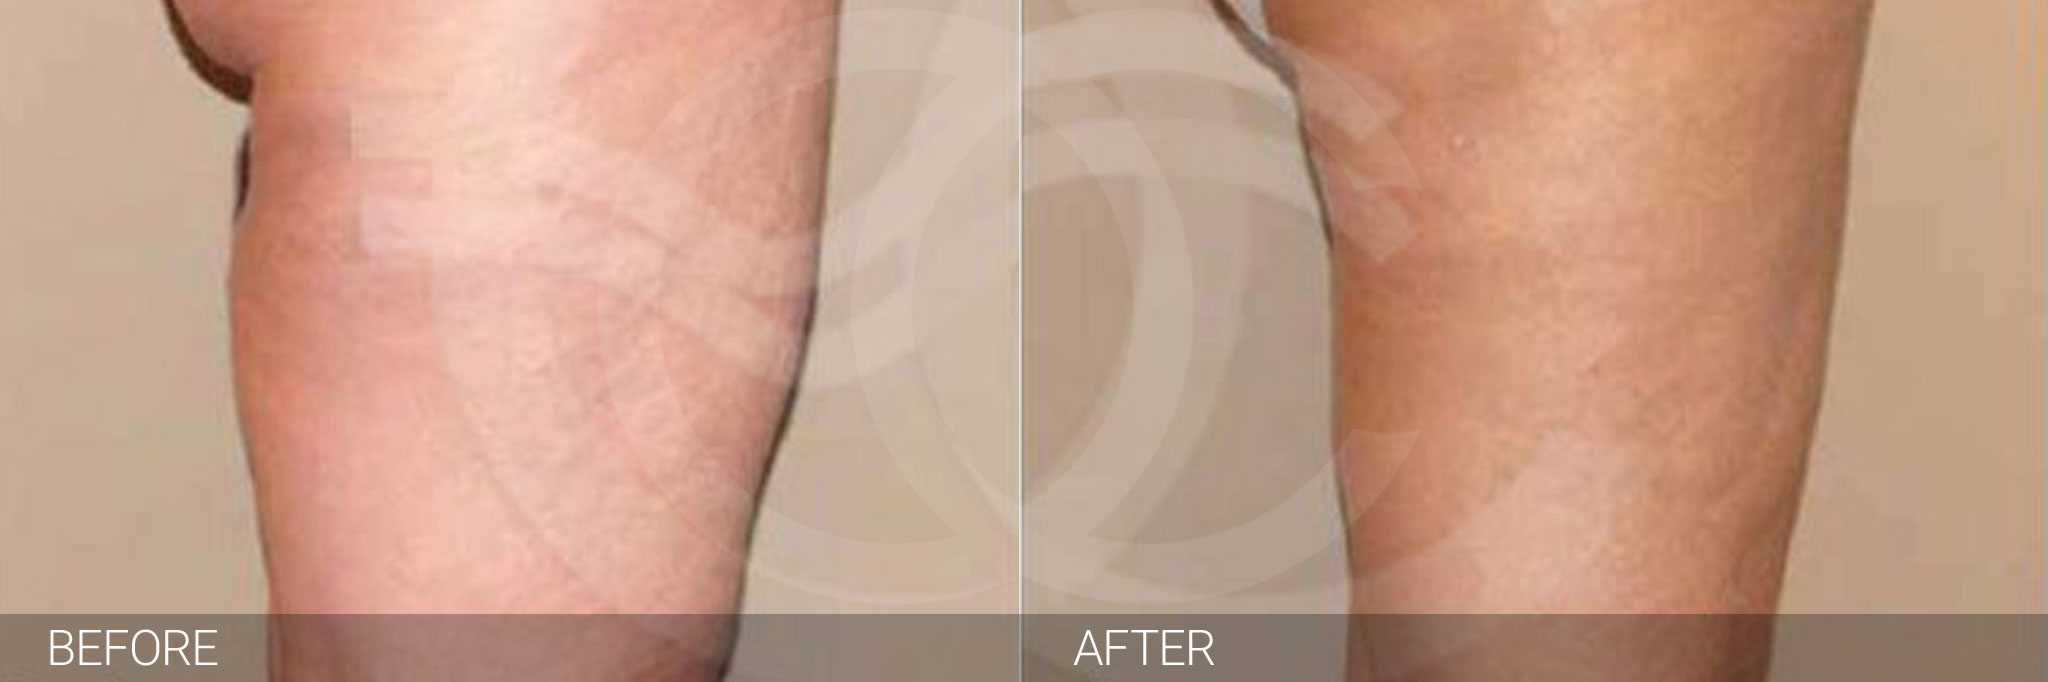 Thigh Lift and Liposculpture ante/post-op II